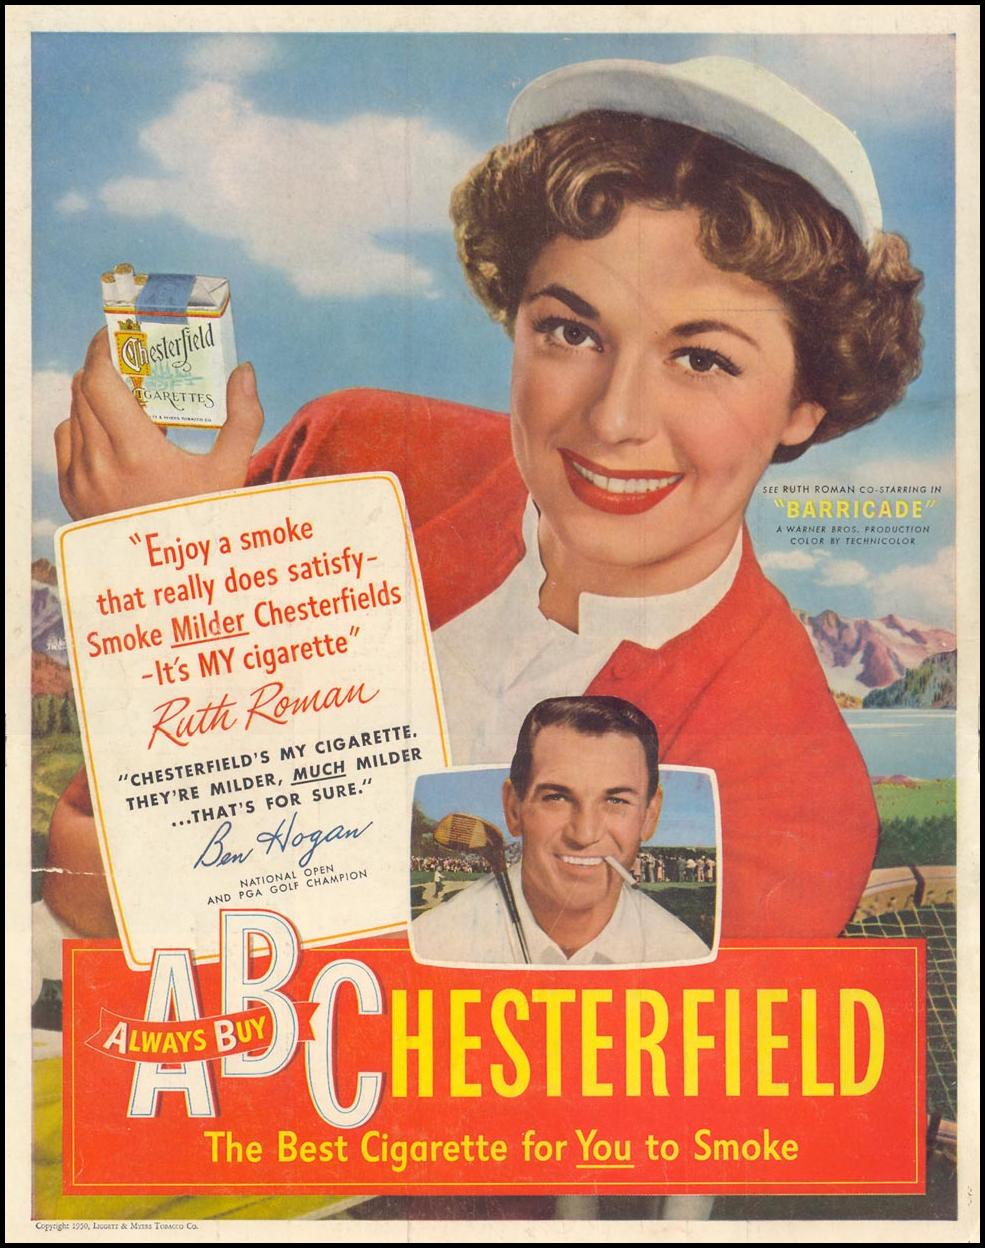 CHESTERFIELD CIGARETTES LIFE 06/05/1950 BACK COVER